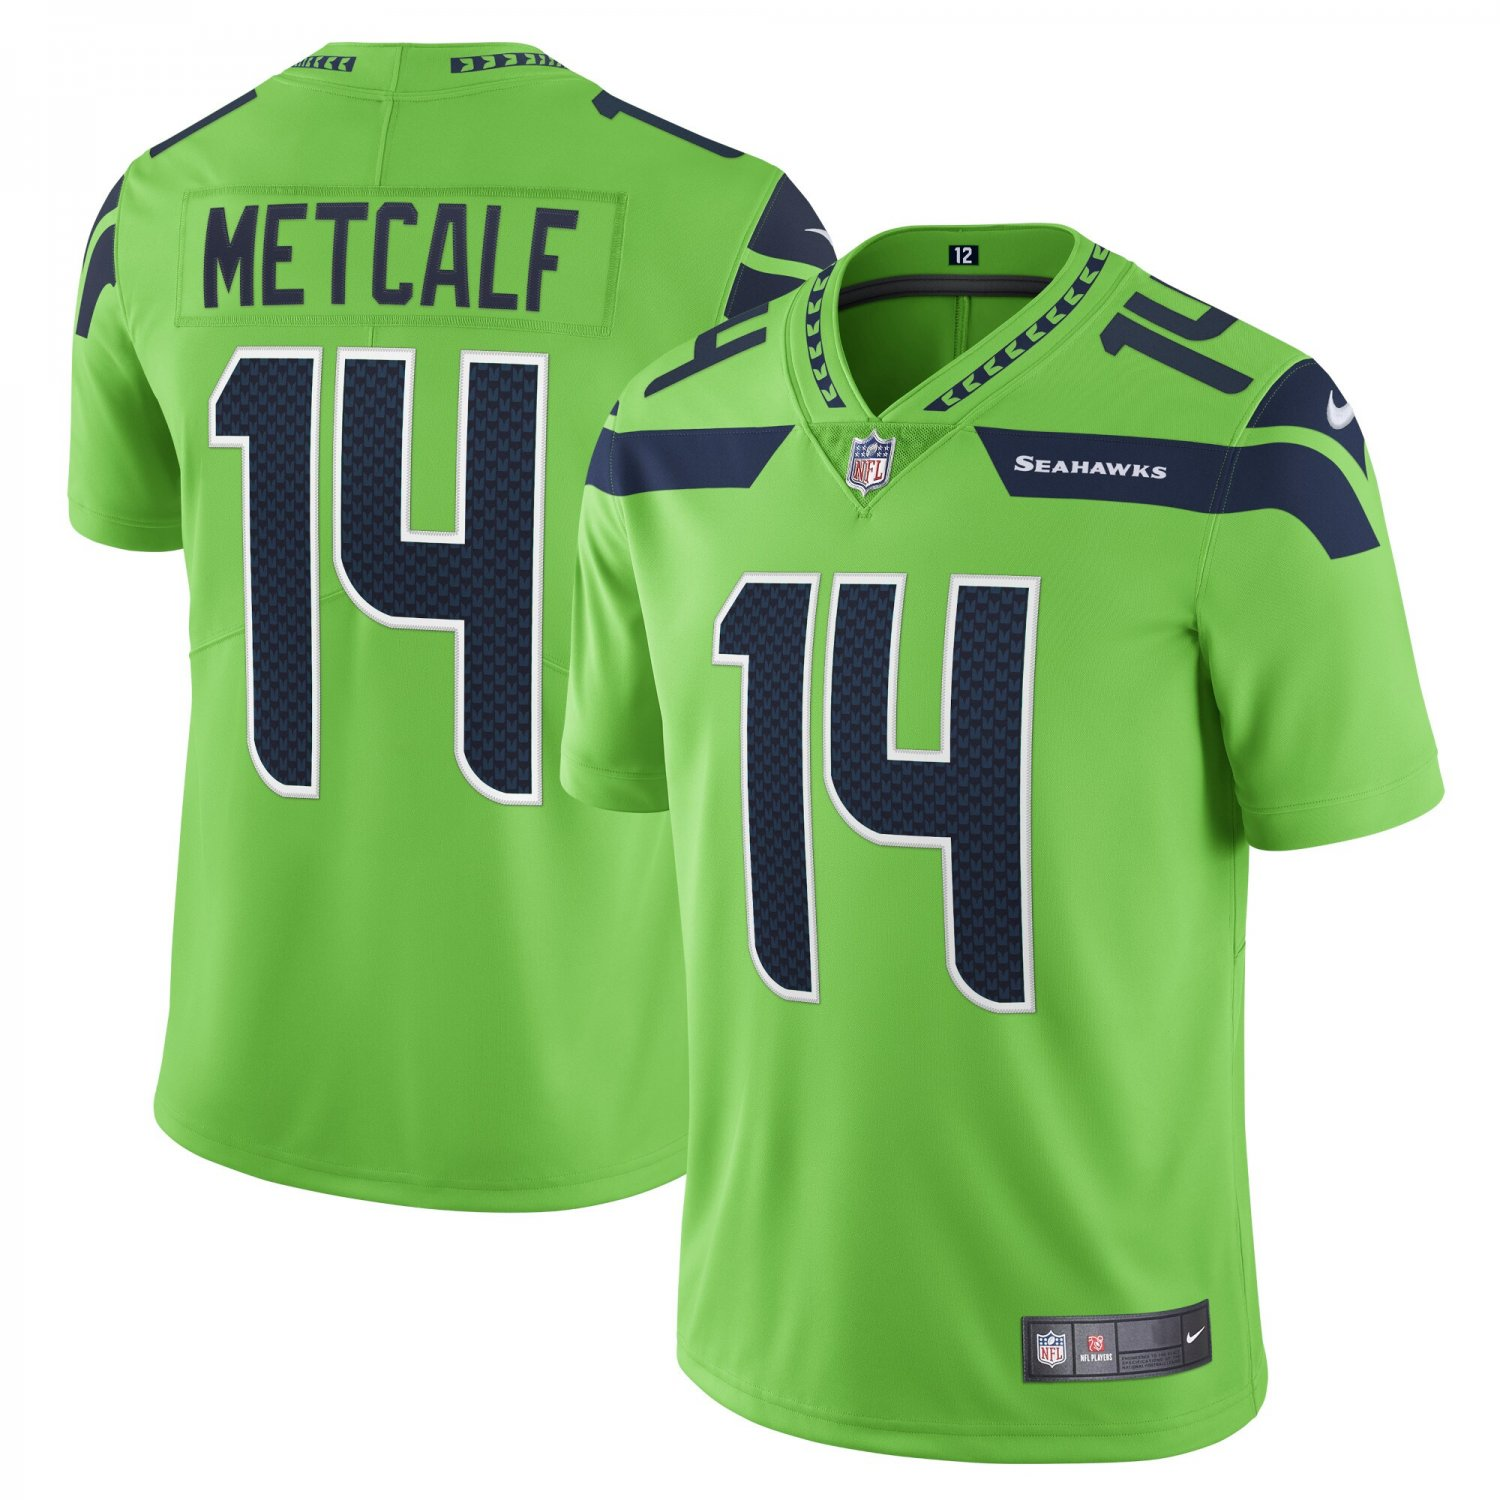 Men's/Youth #14 DK Metcalf Seattle Seahawks Football Vapor Limited Neon Green Jersey Stitched